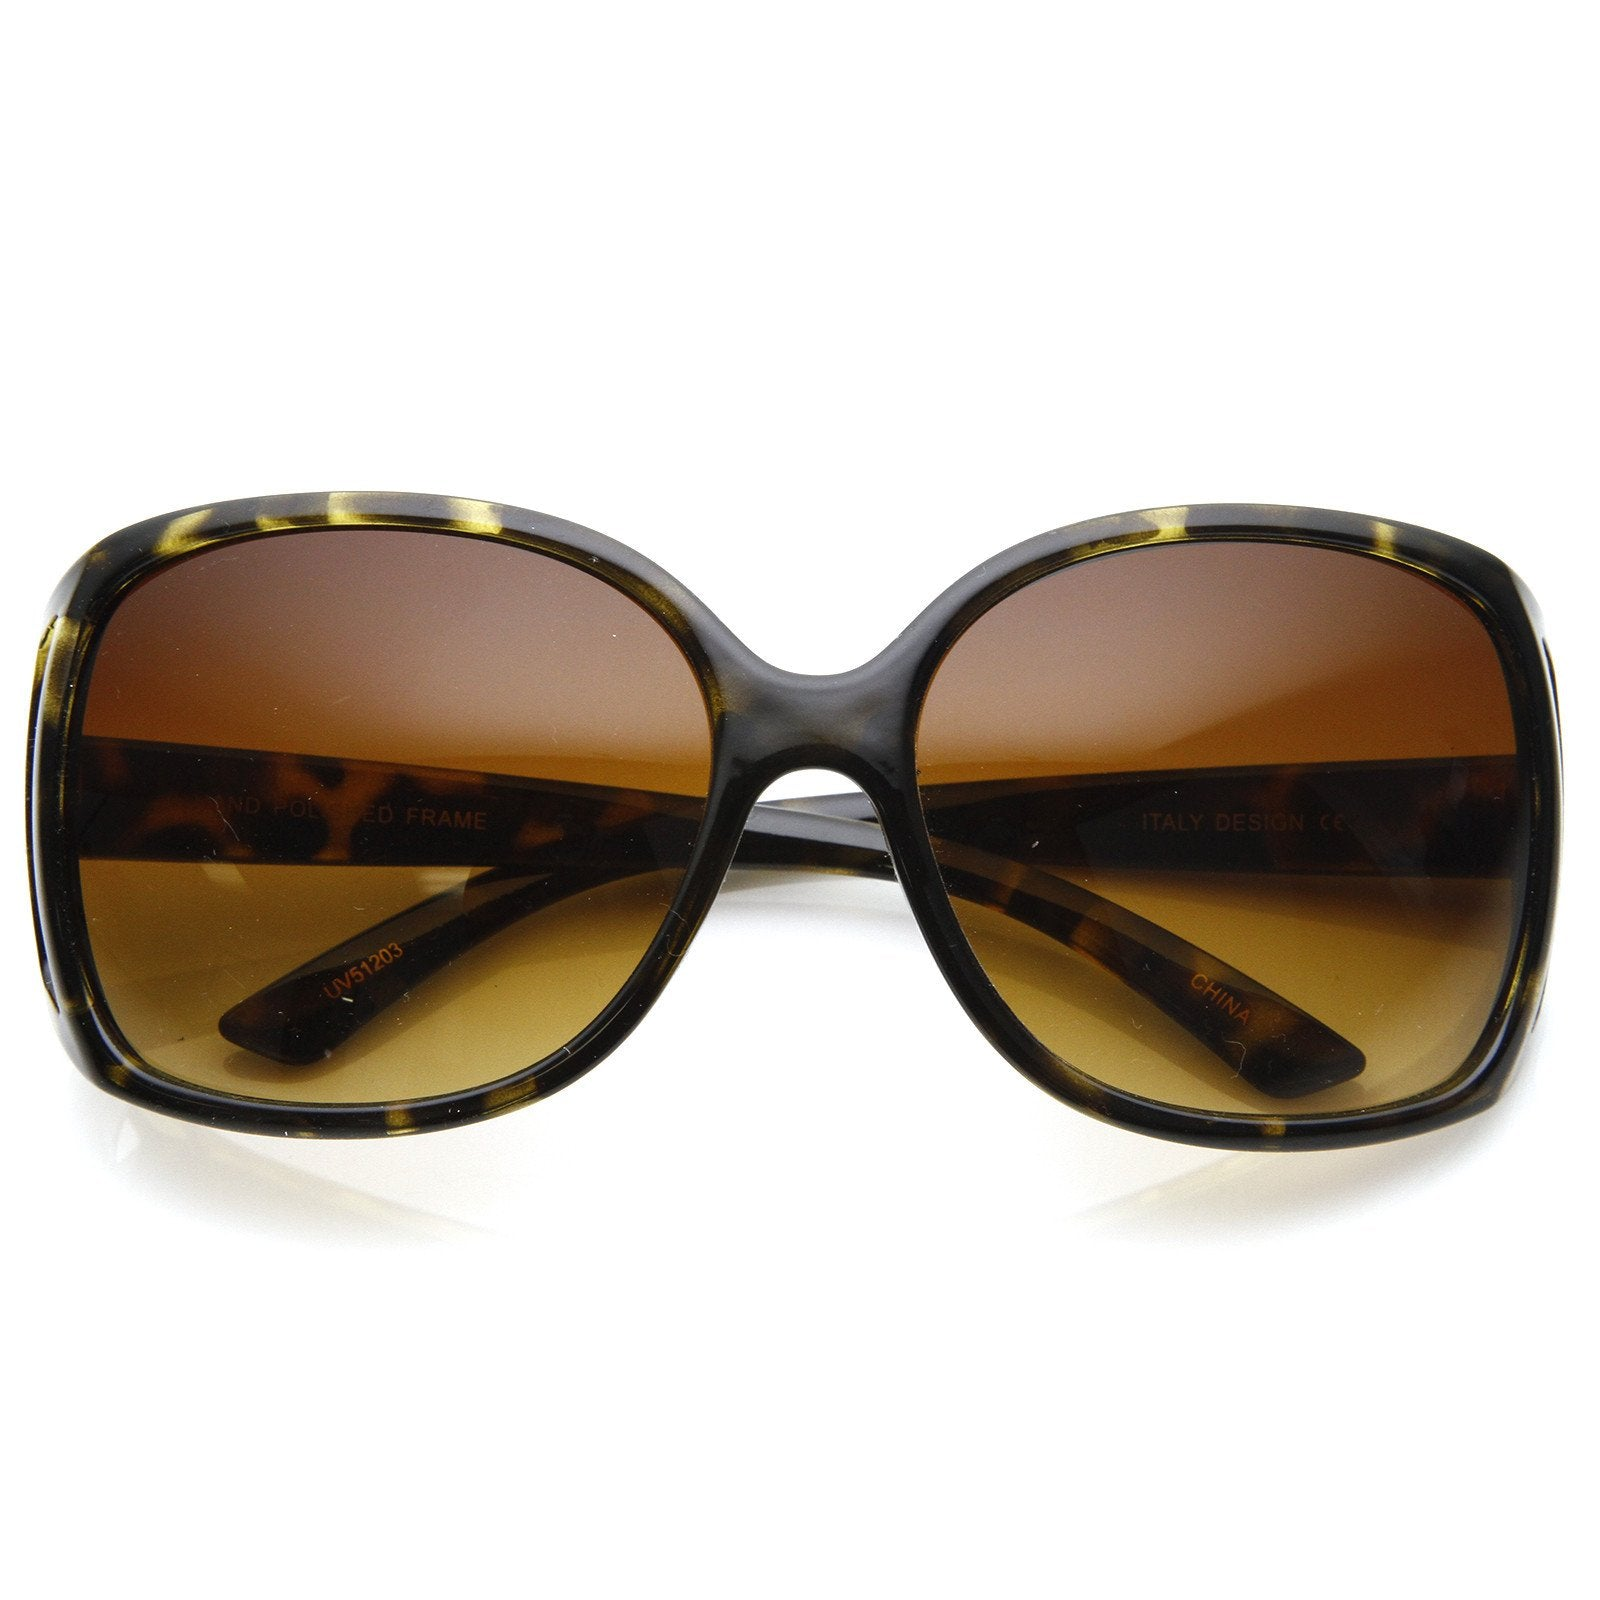 0e3a387aa9 ... Large Square Womens Fashion Eyewear Sunglasses 8753 · Tortoise